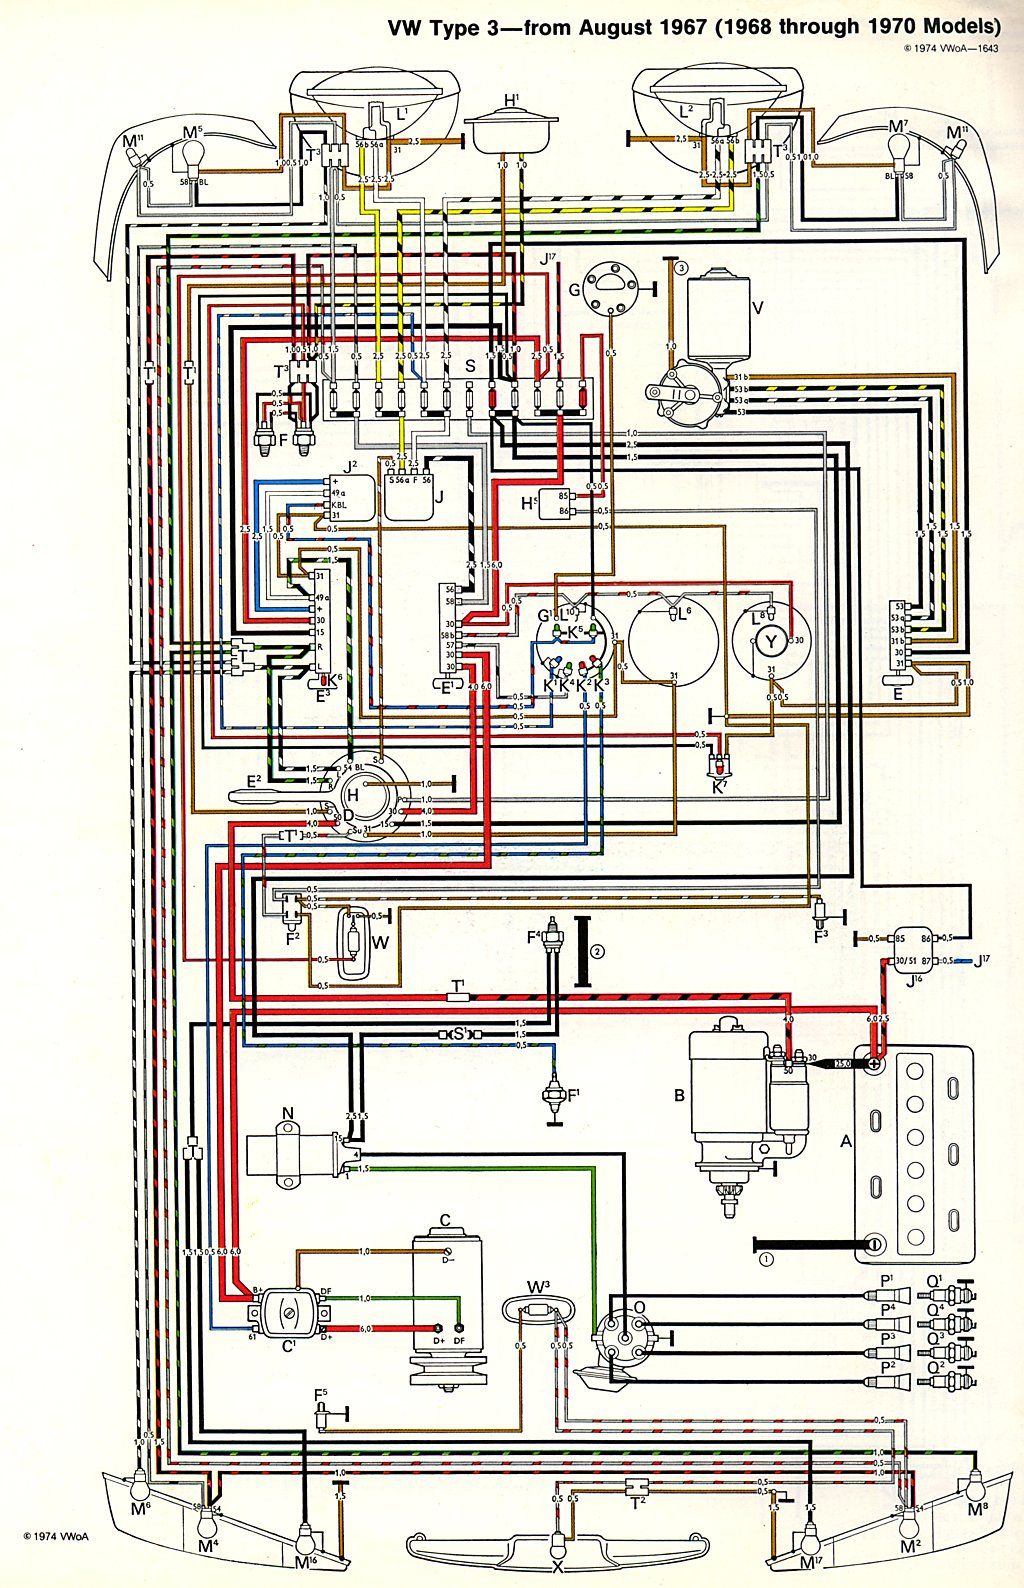 type3_6870 vw thing wiring diagram 1974 beetle heater diagram \u2022 wiring Wiring Harness Diagram at mifinder.co